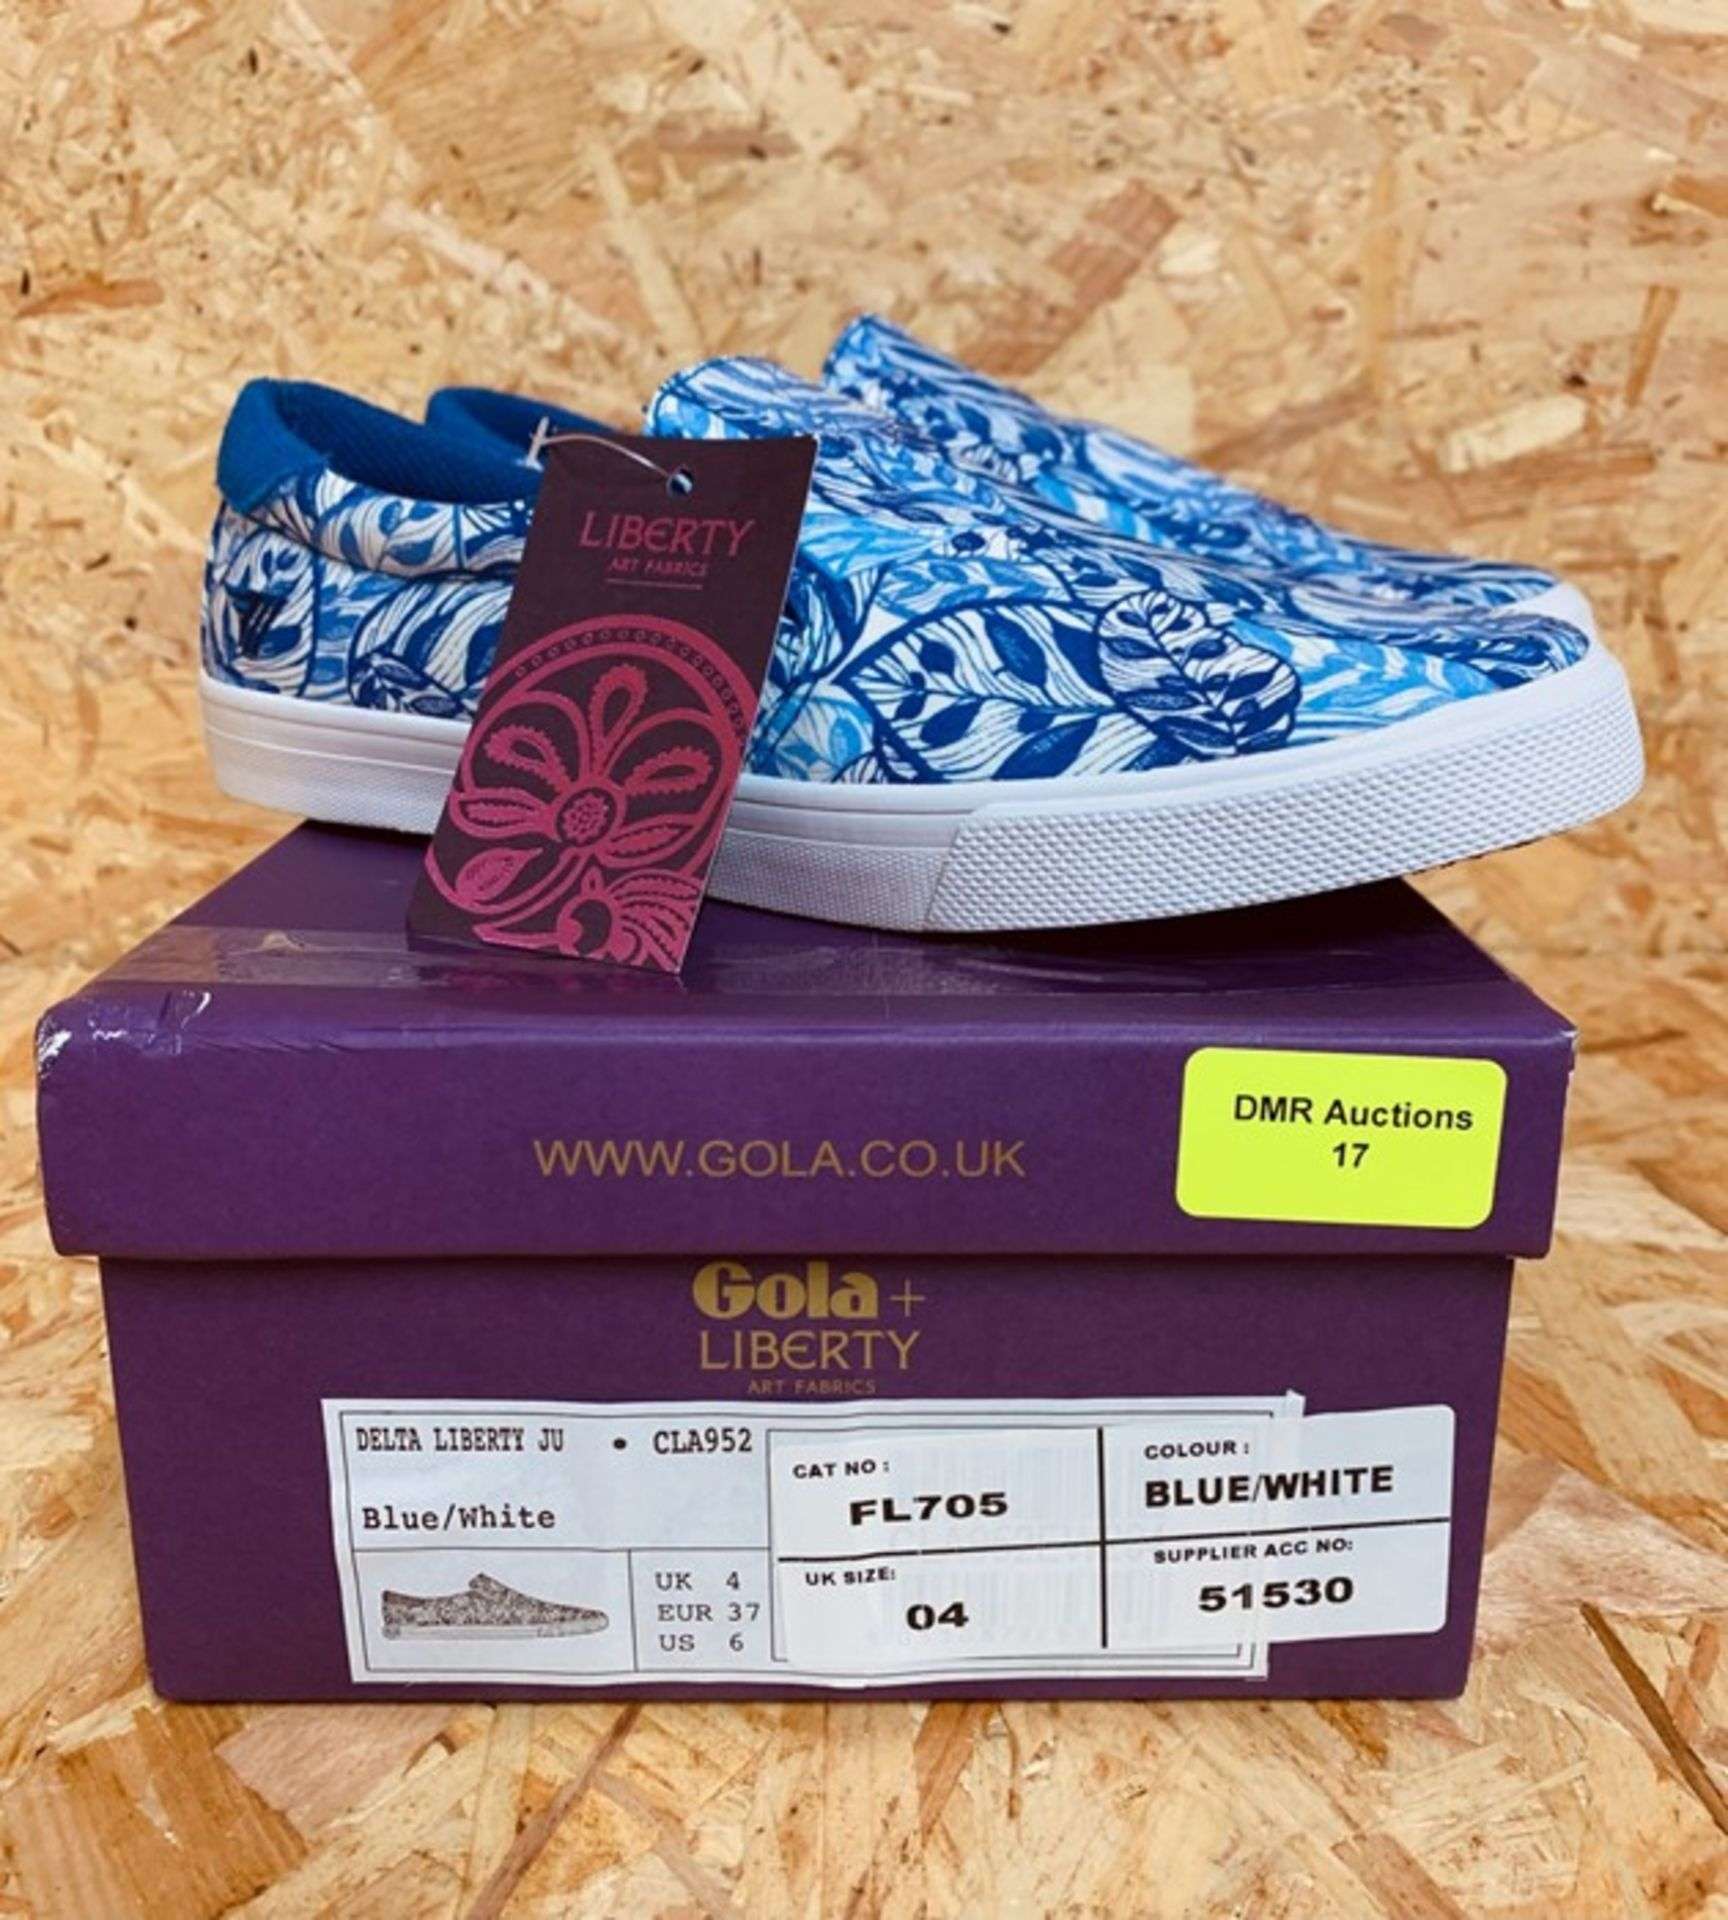 GOLA LADIES CLA952 DELTA LIBERTY SNEAKERS - UK SIZE 4/BLUE/WHITE